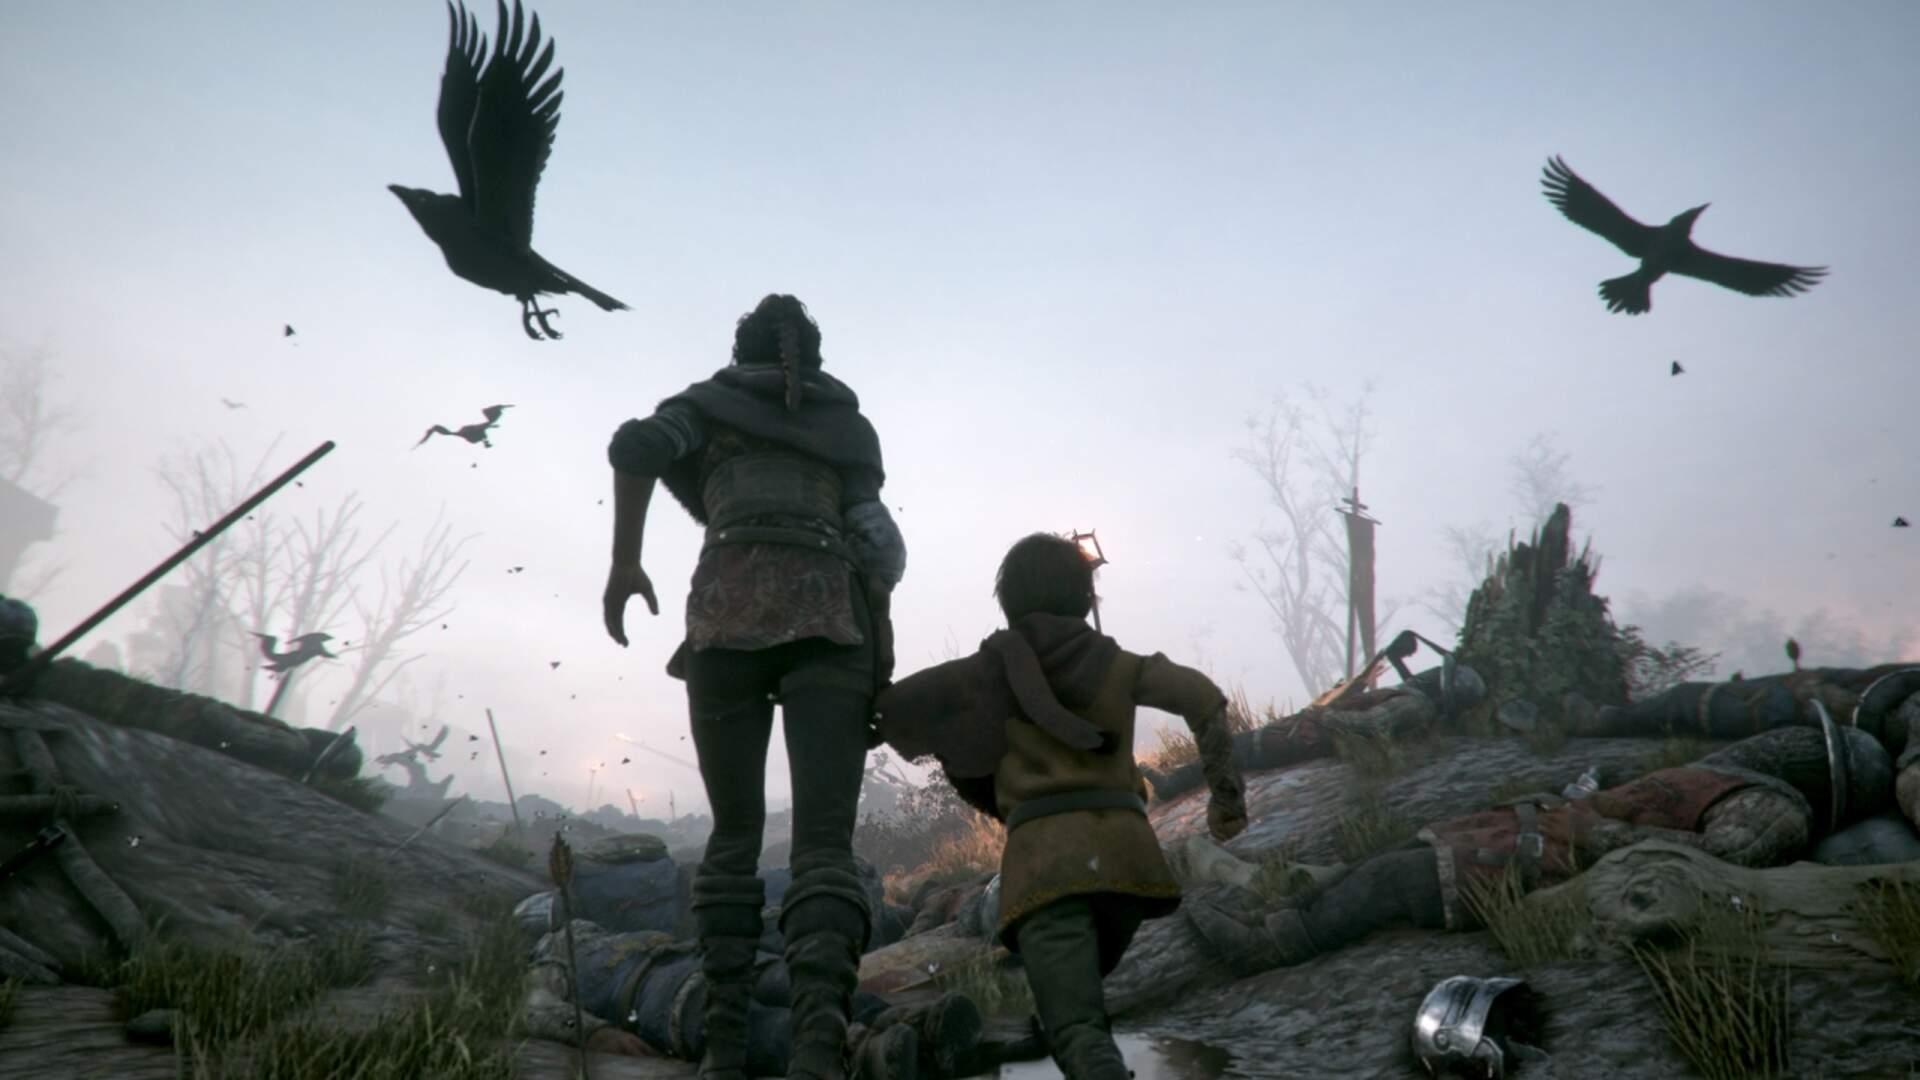 Report: A Plague Tale 2 is In Development